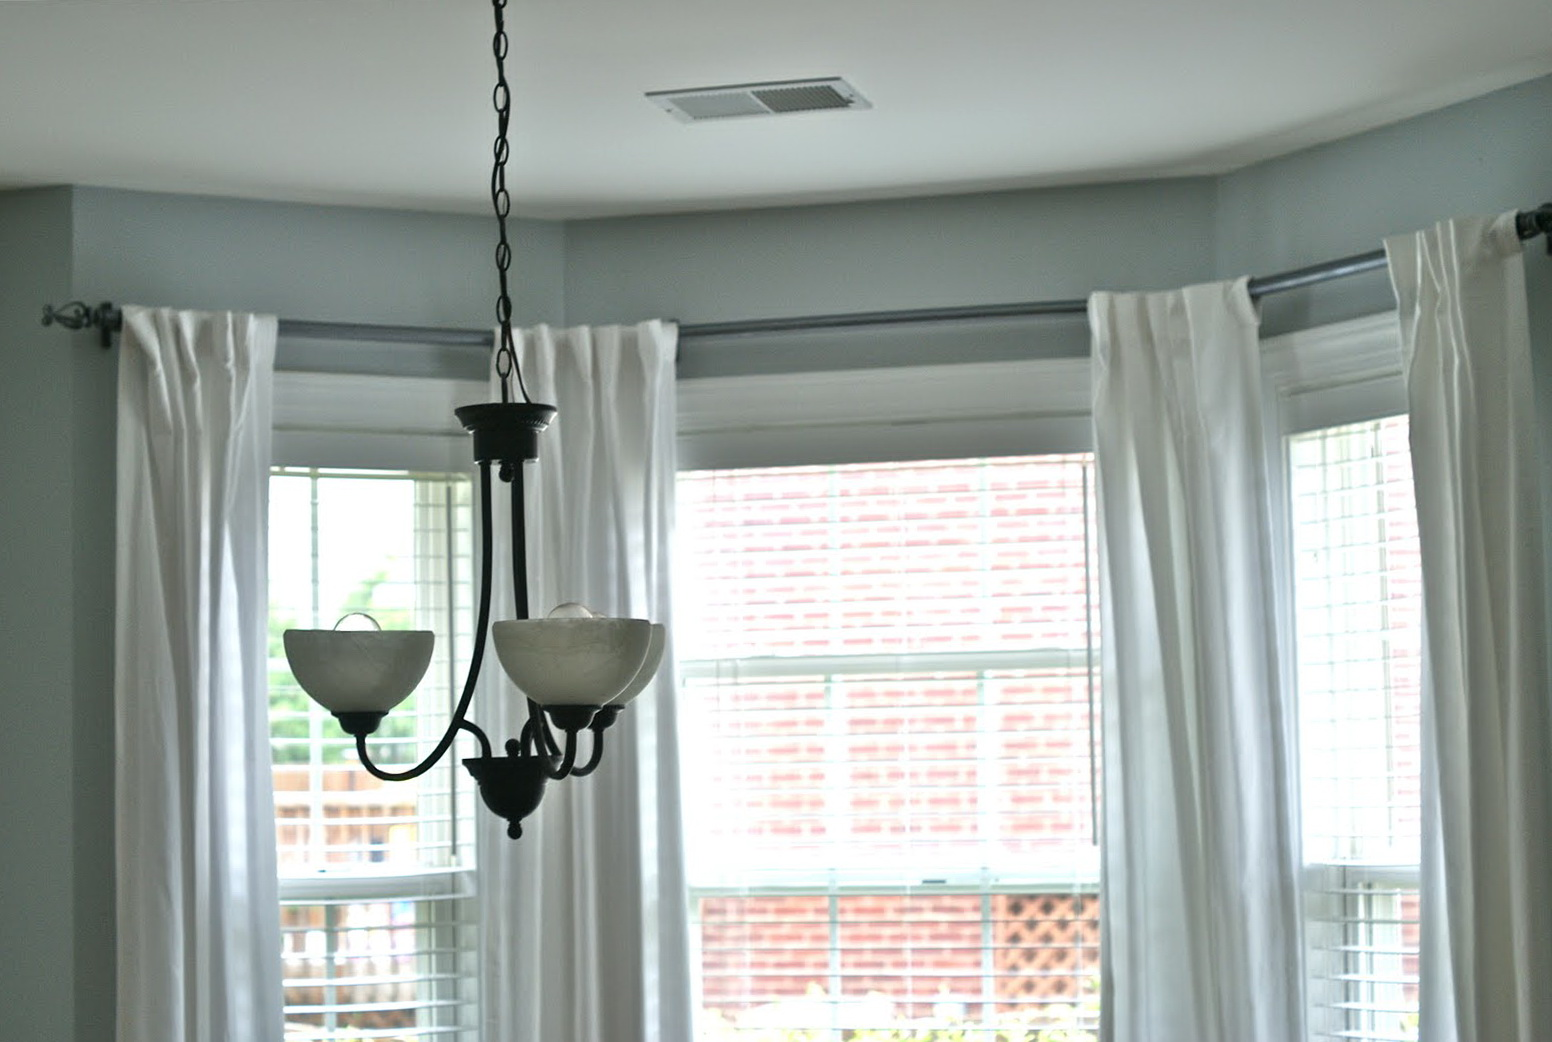 Bay Window Curtain Pole Ceiling Mounted Home Design Ideas